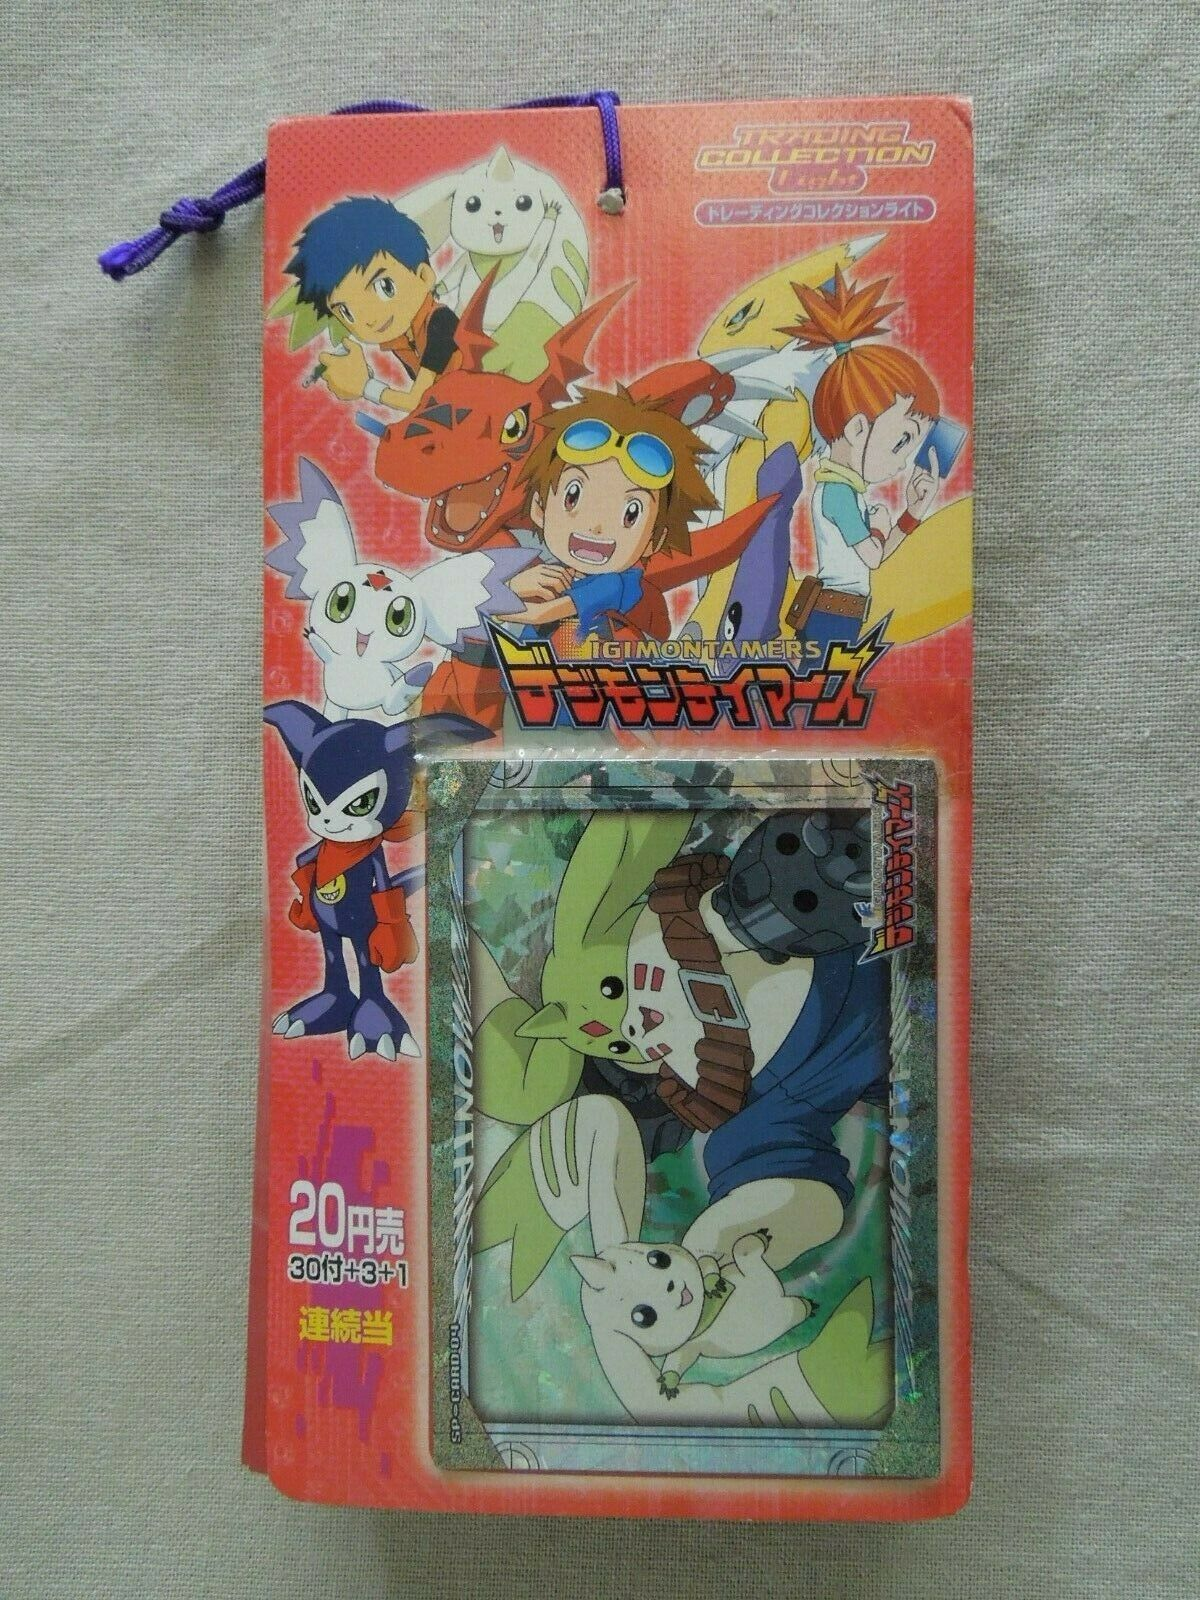 Rare  AMADA 2001 Digimon Tamers  Trading Bromide autod Lot Beai fatto in Japan  offerta speciale